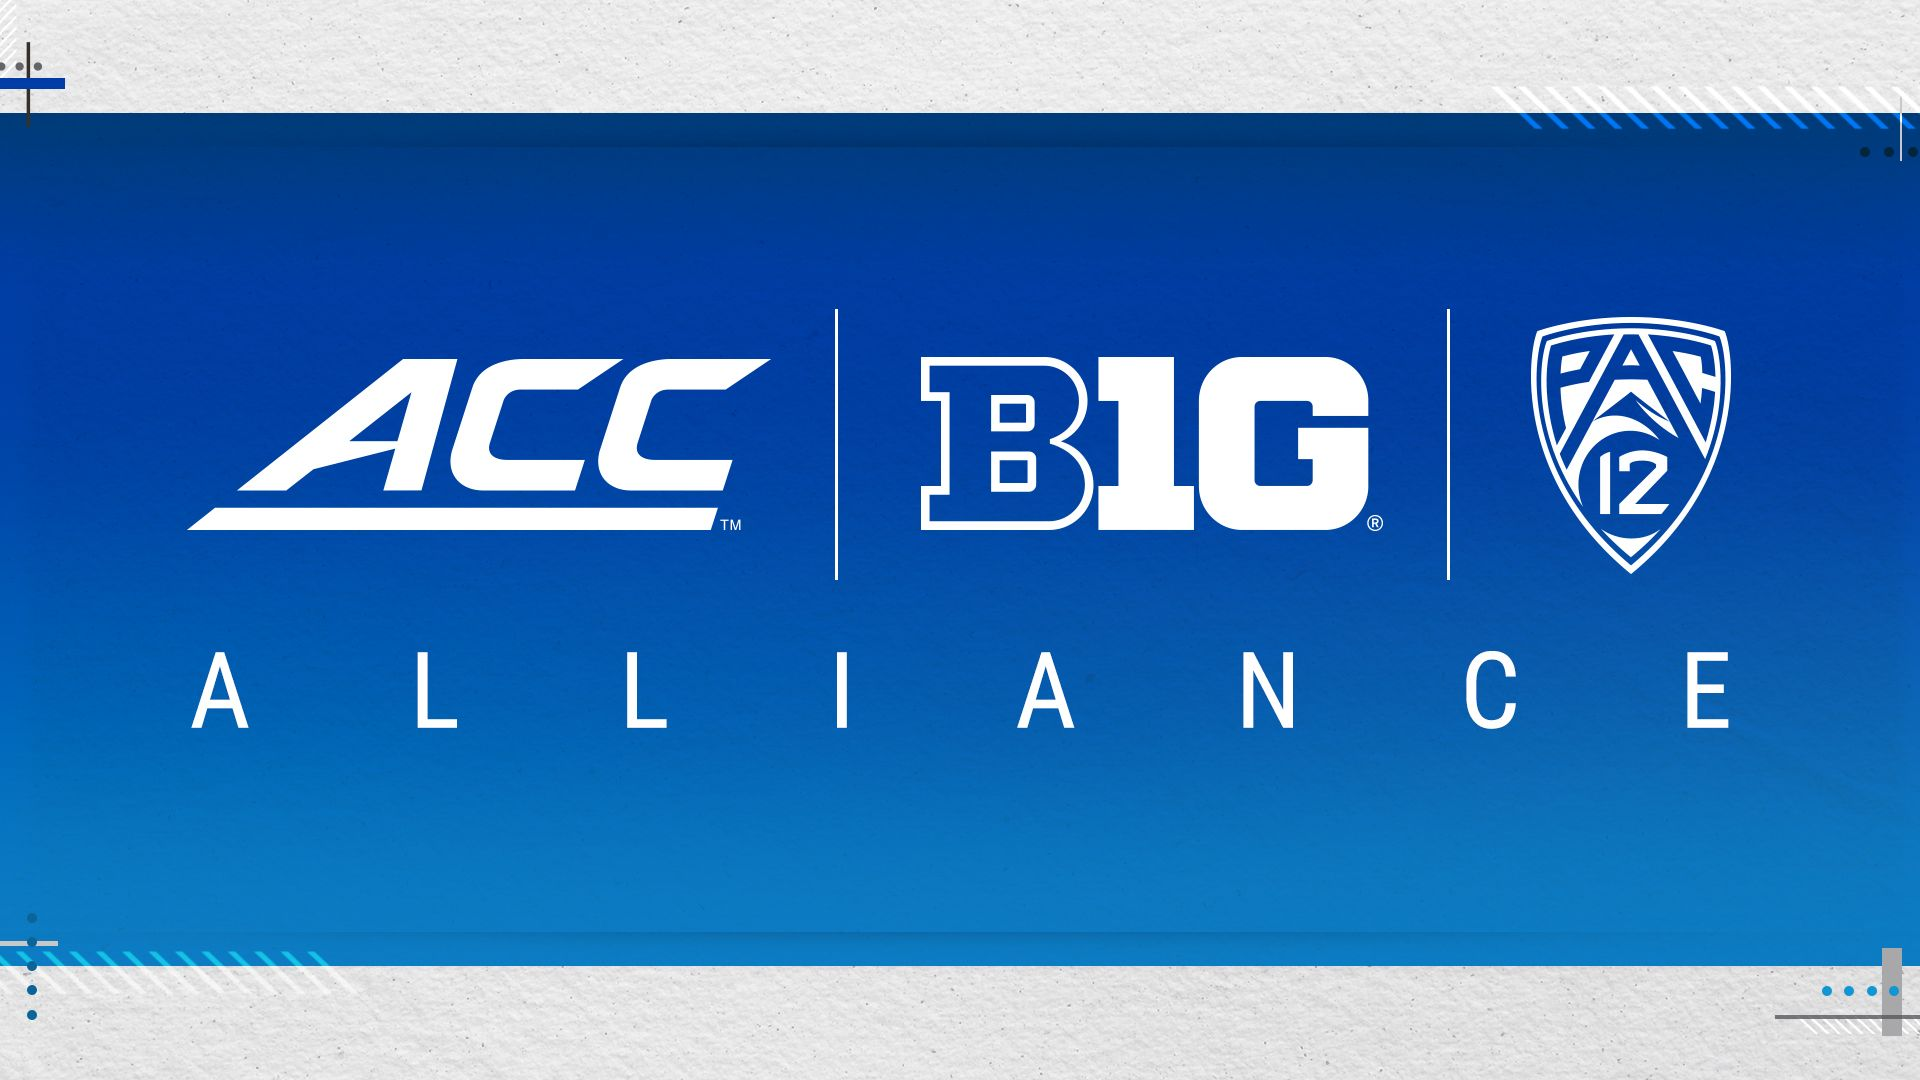 ACC, Big Ten and Pac-12 Announce Historic Alliance